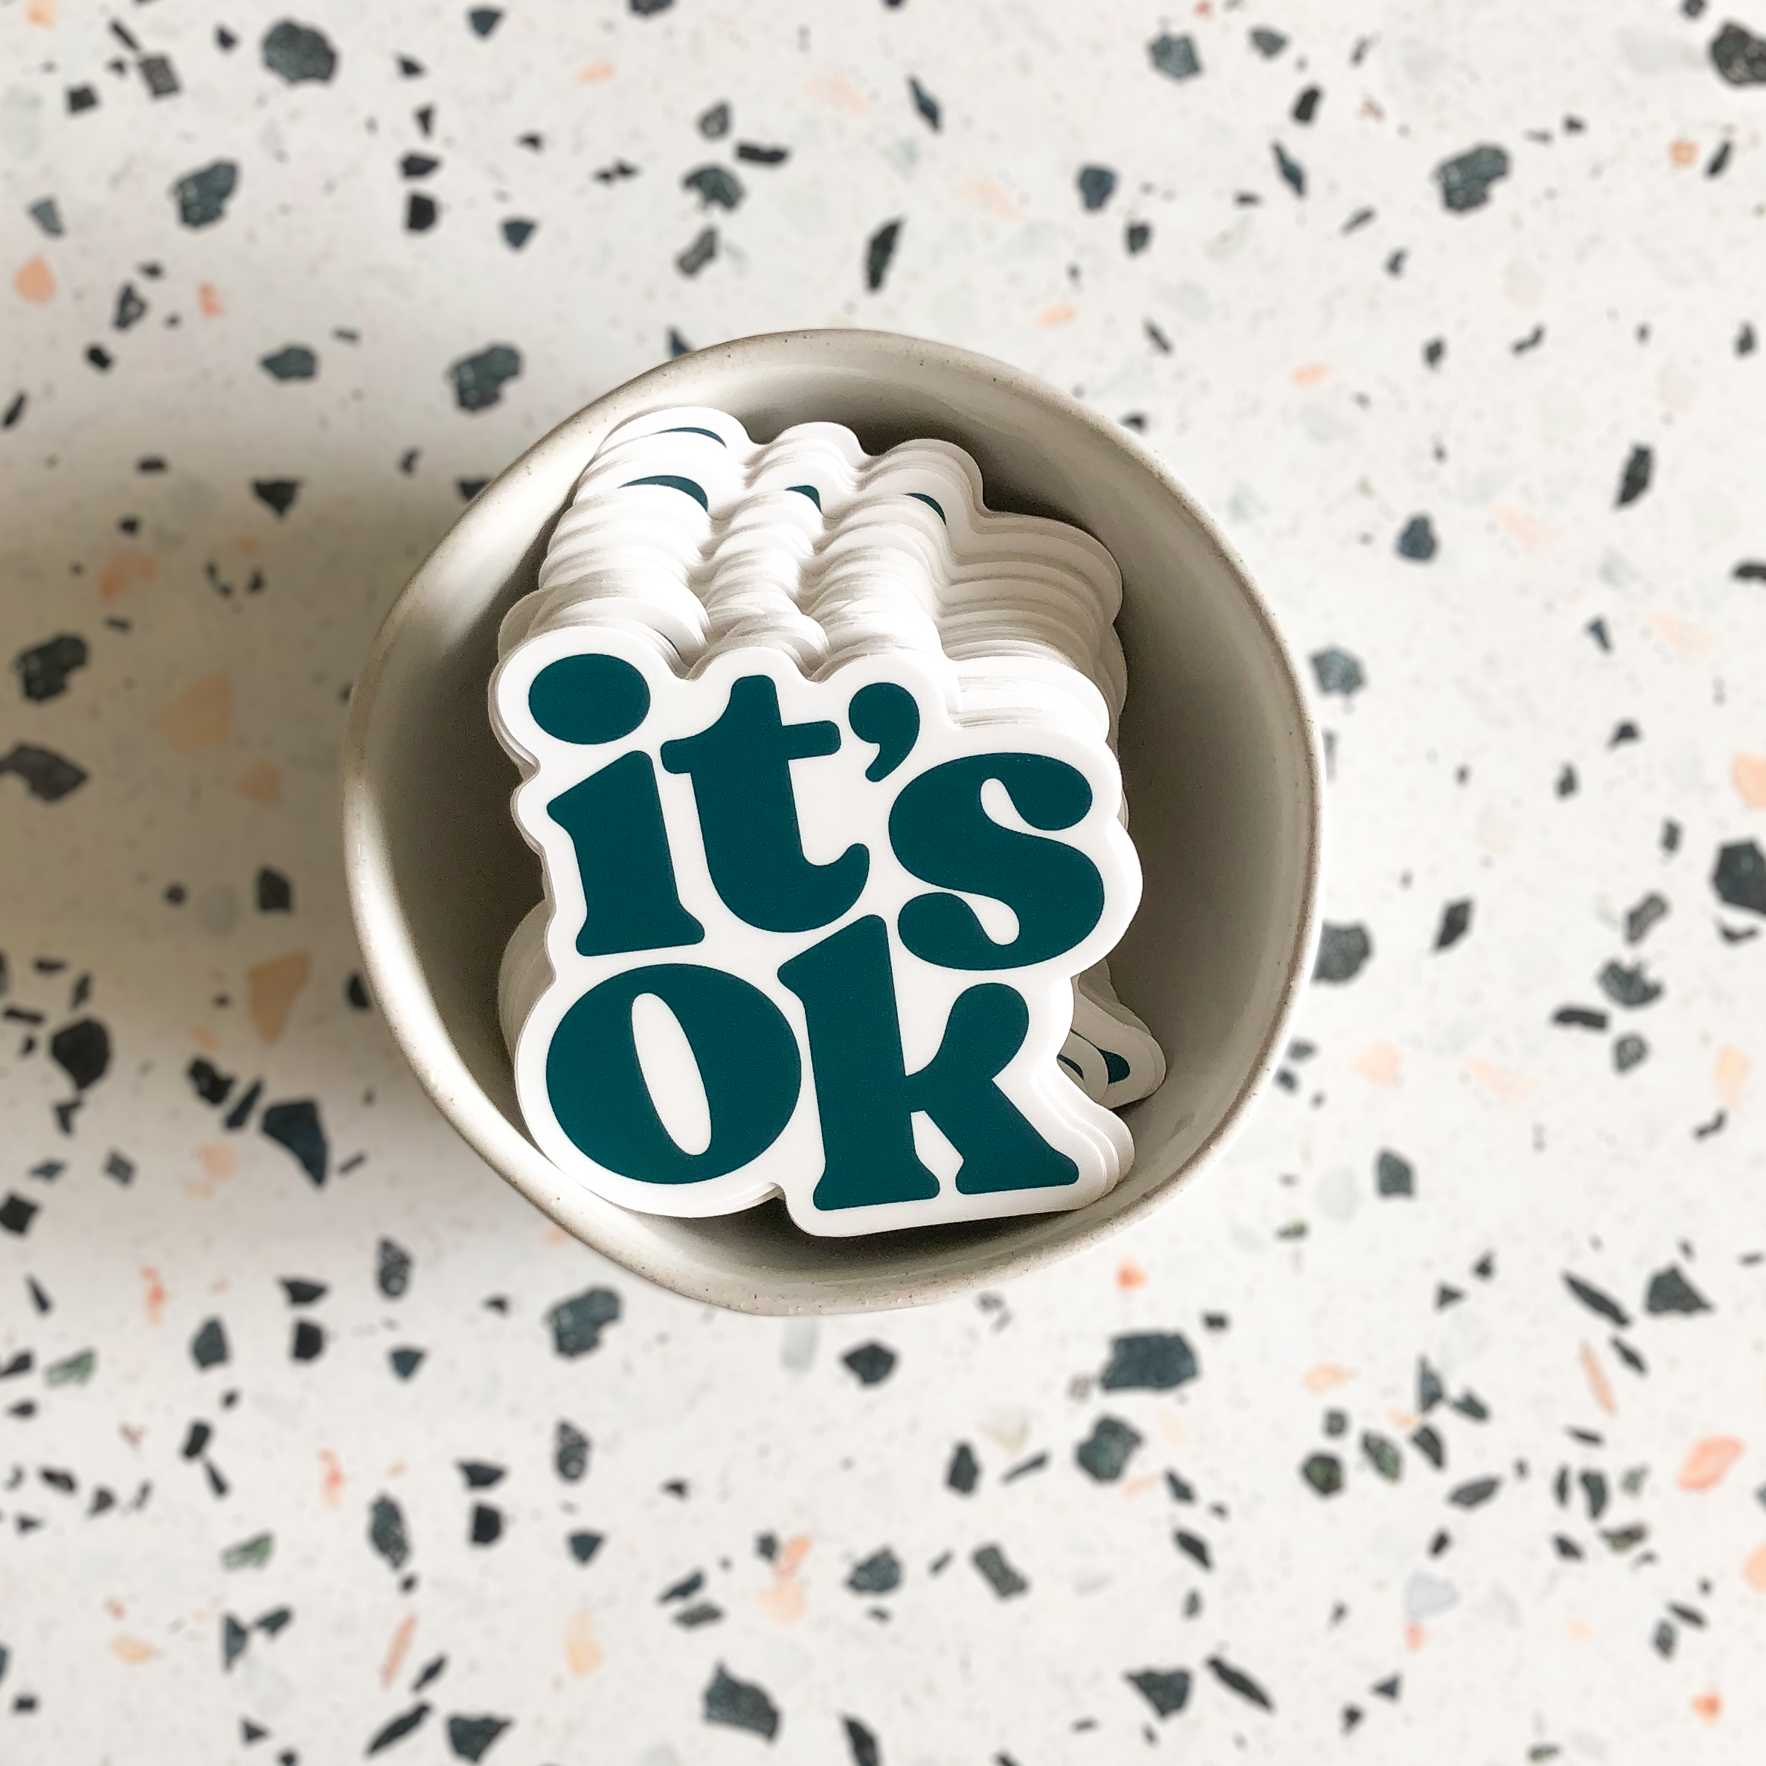 Stack of It's Ok teal stickers in a small bowl.